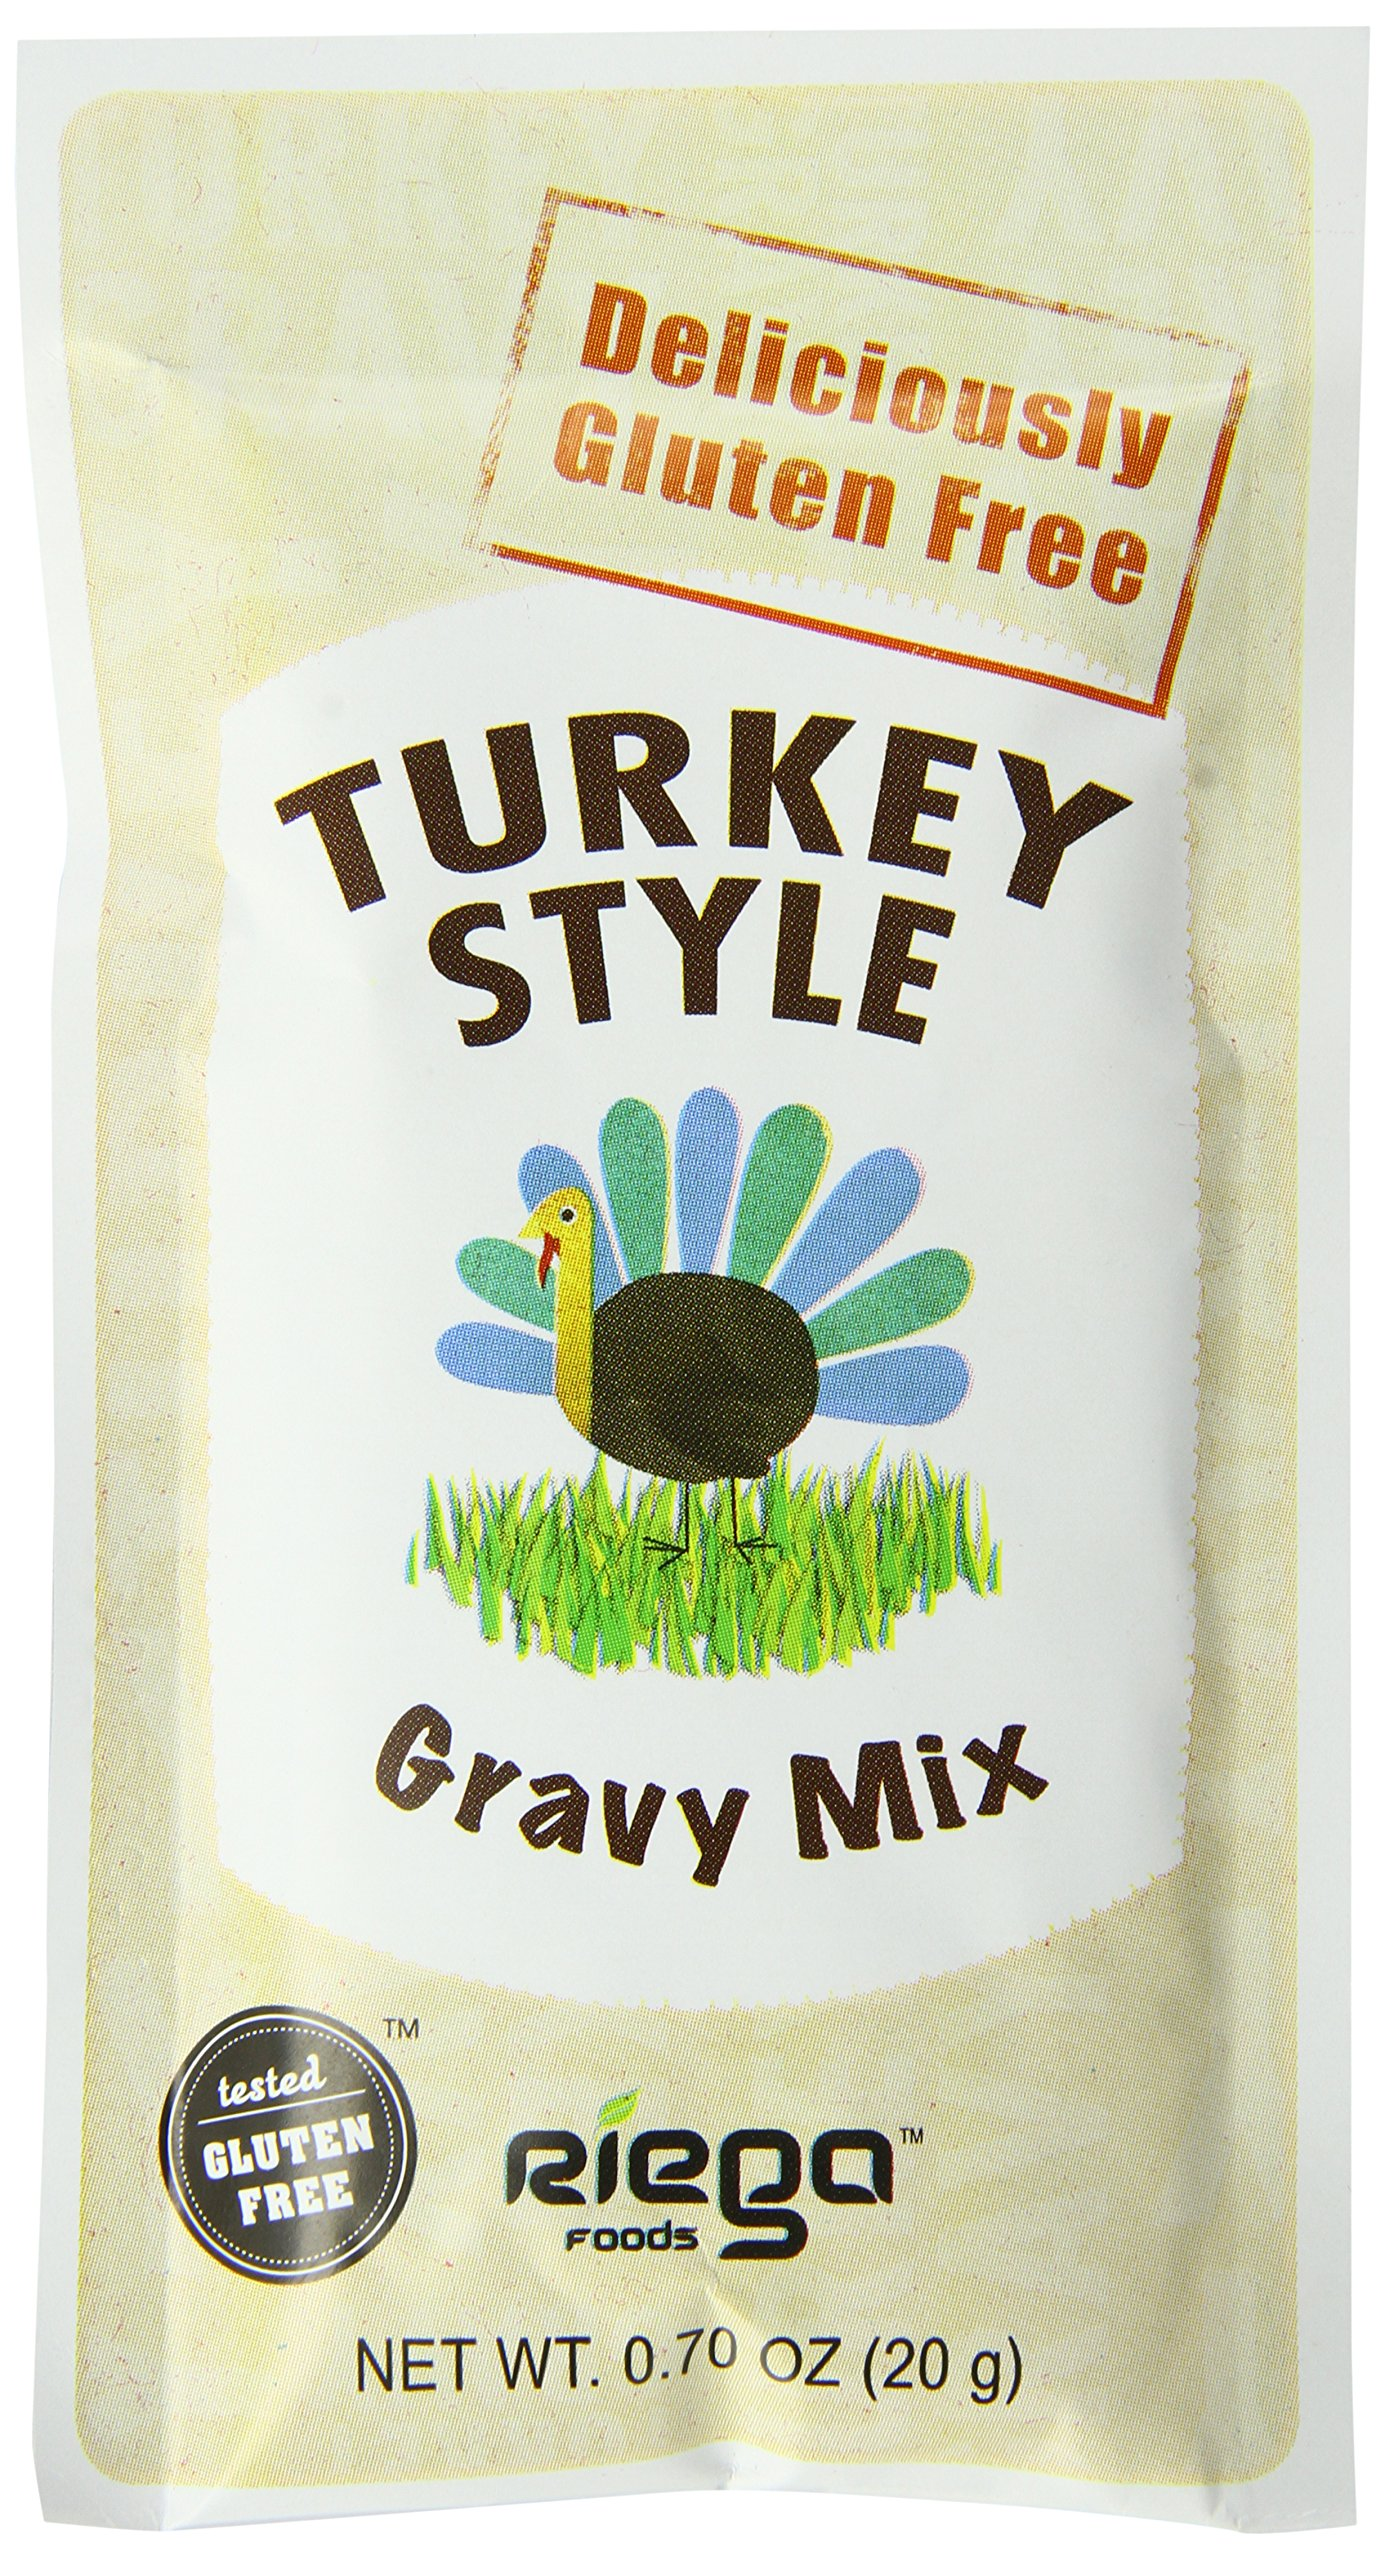 Riega Gluten Free Turkey Style Gravy Mix, 0.70 Ounce (Pack of 8) by Riega